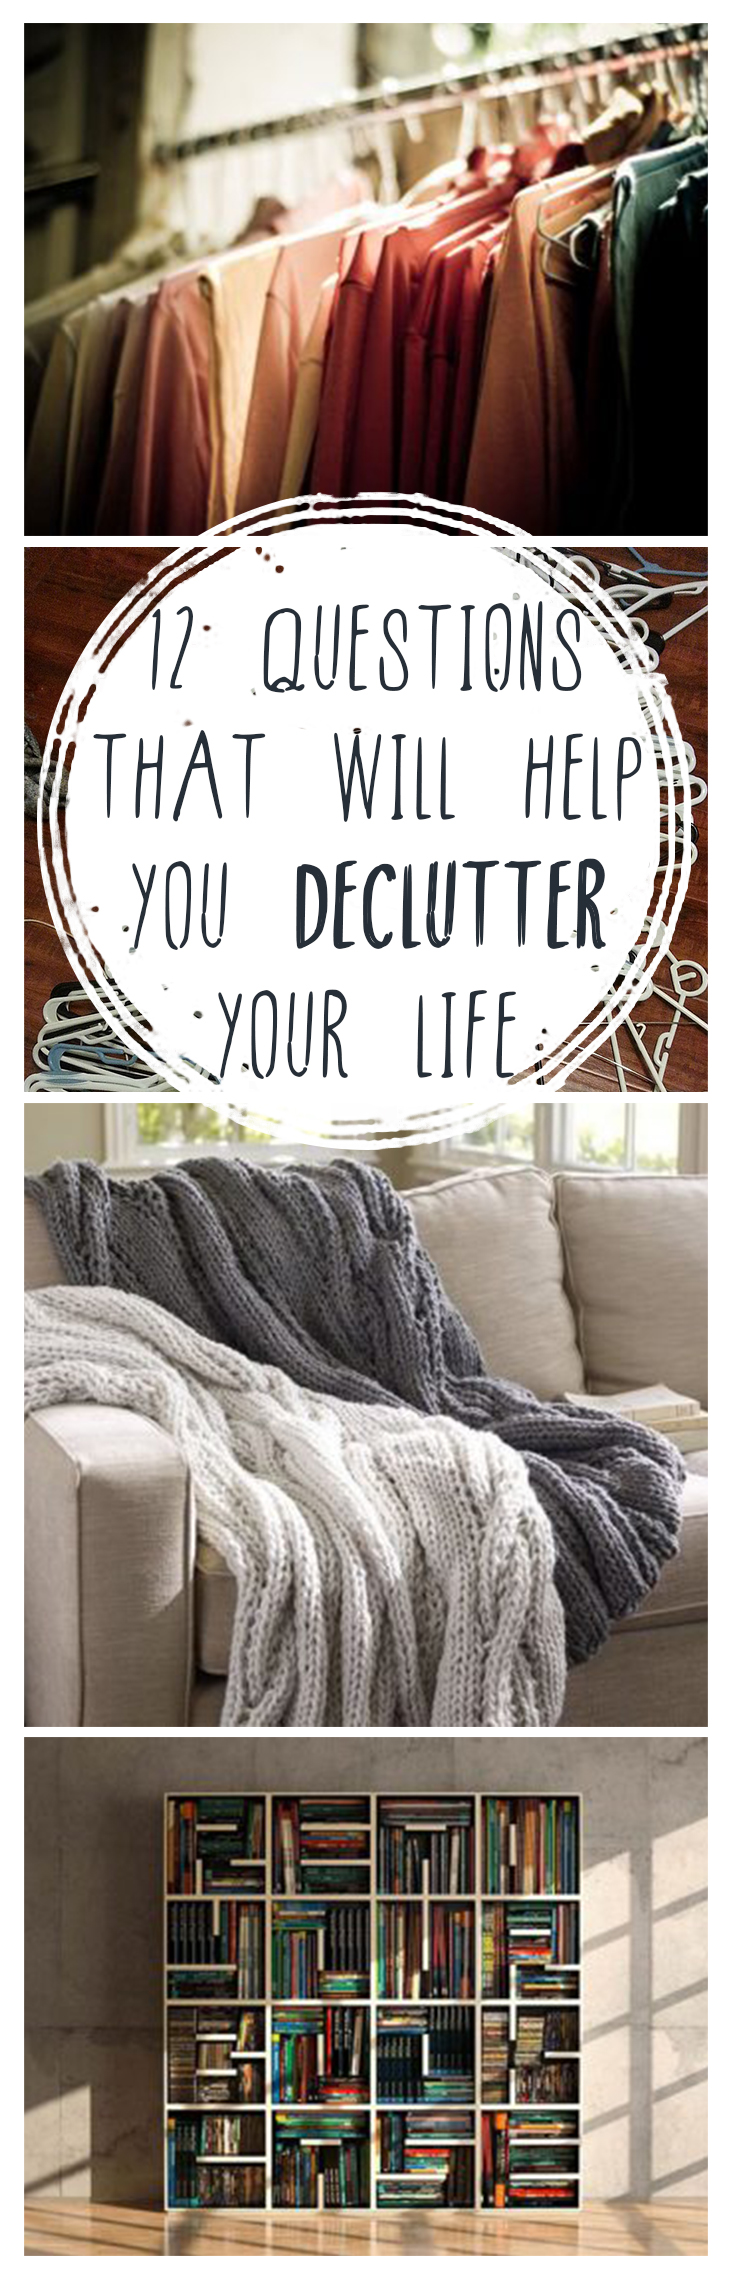 Declutter, clutter free home, DIY organization, popular pin, clean home, organized home, DIY declutter, home storage ideas.